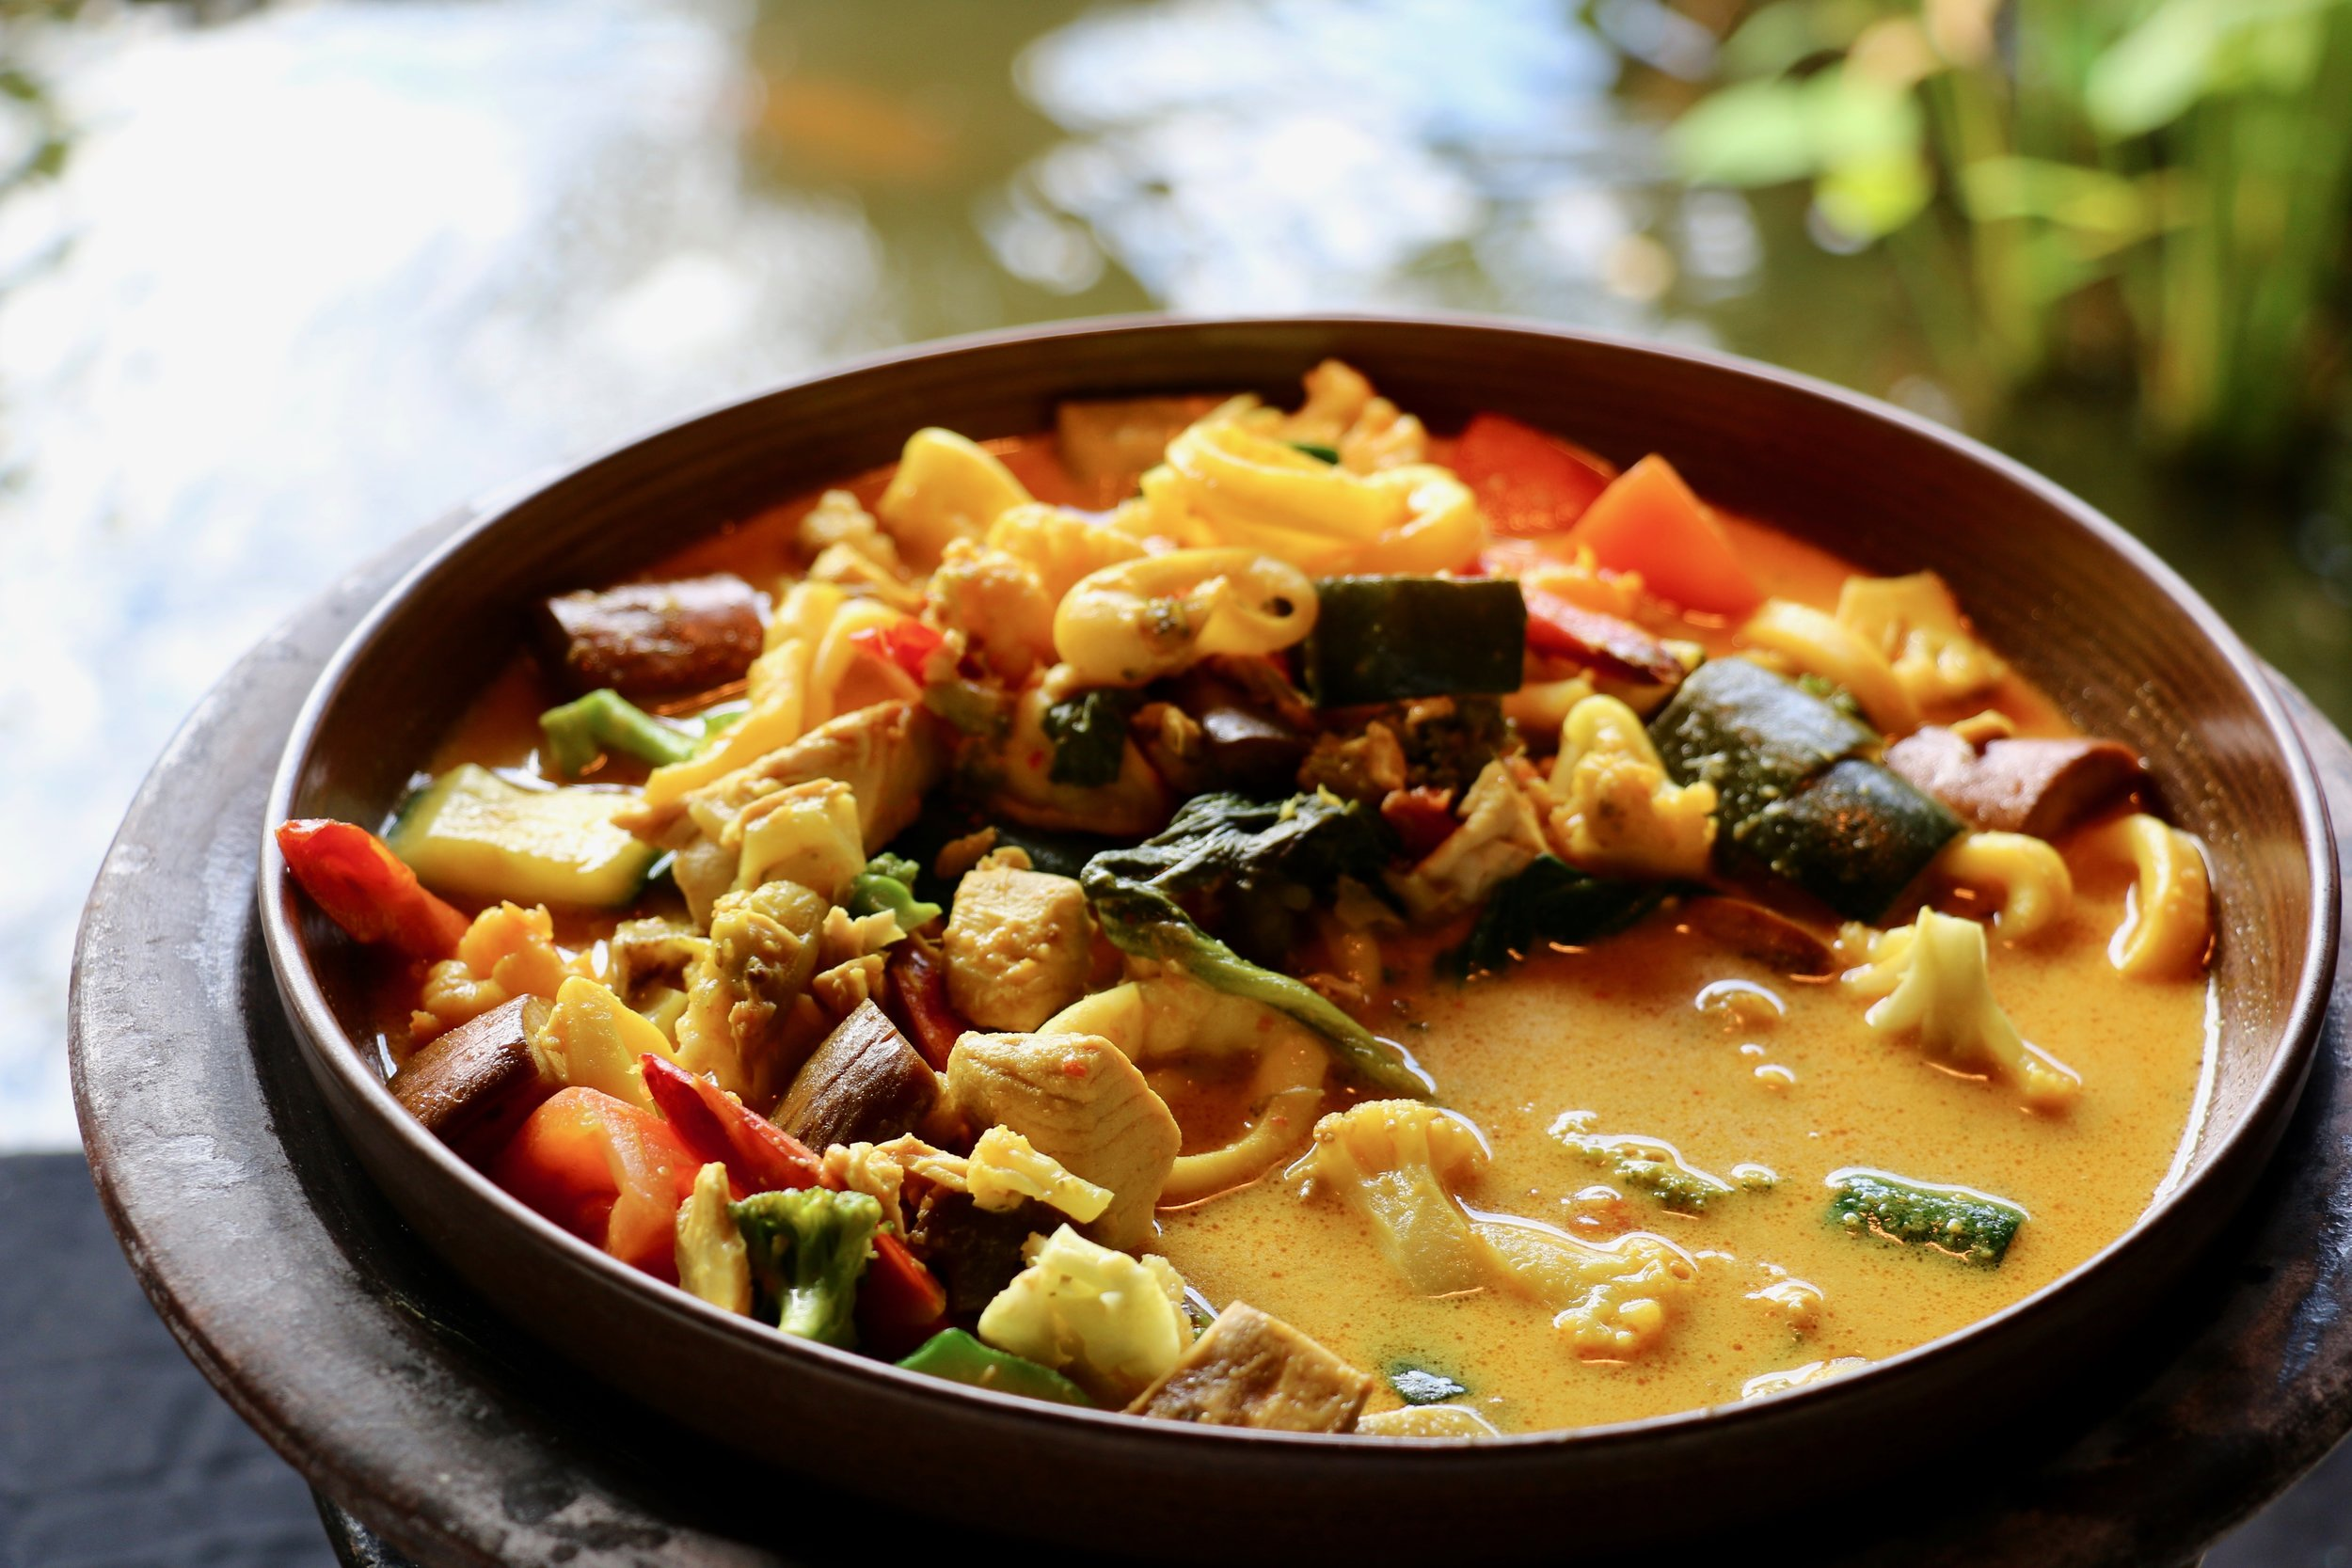 One of their local dishes: chicken curry